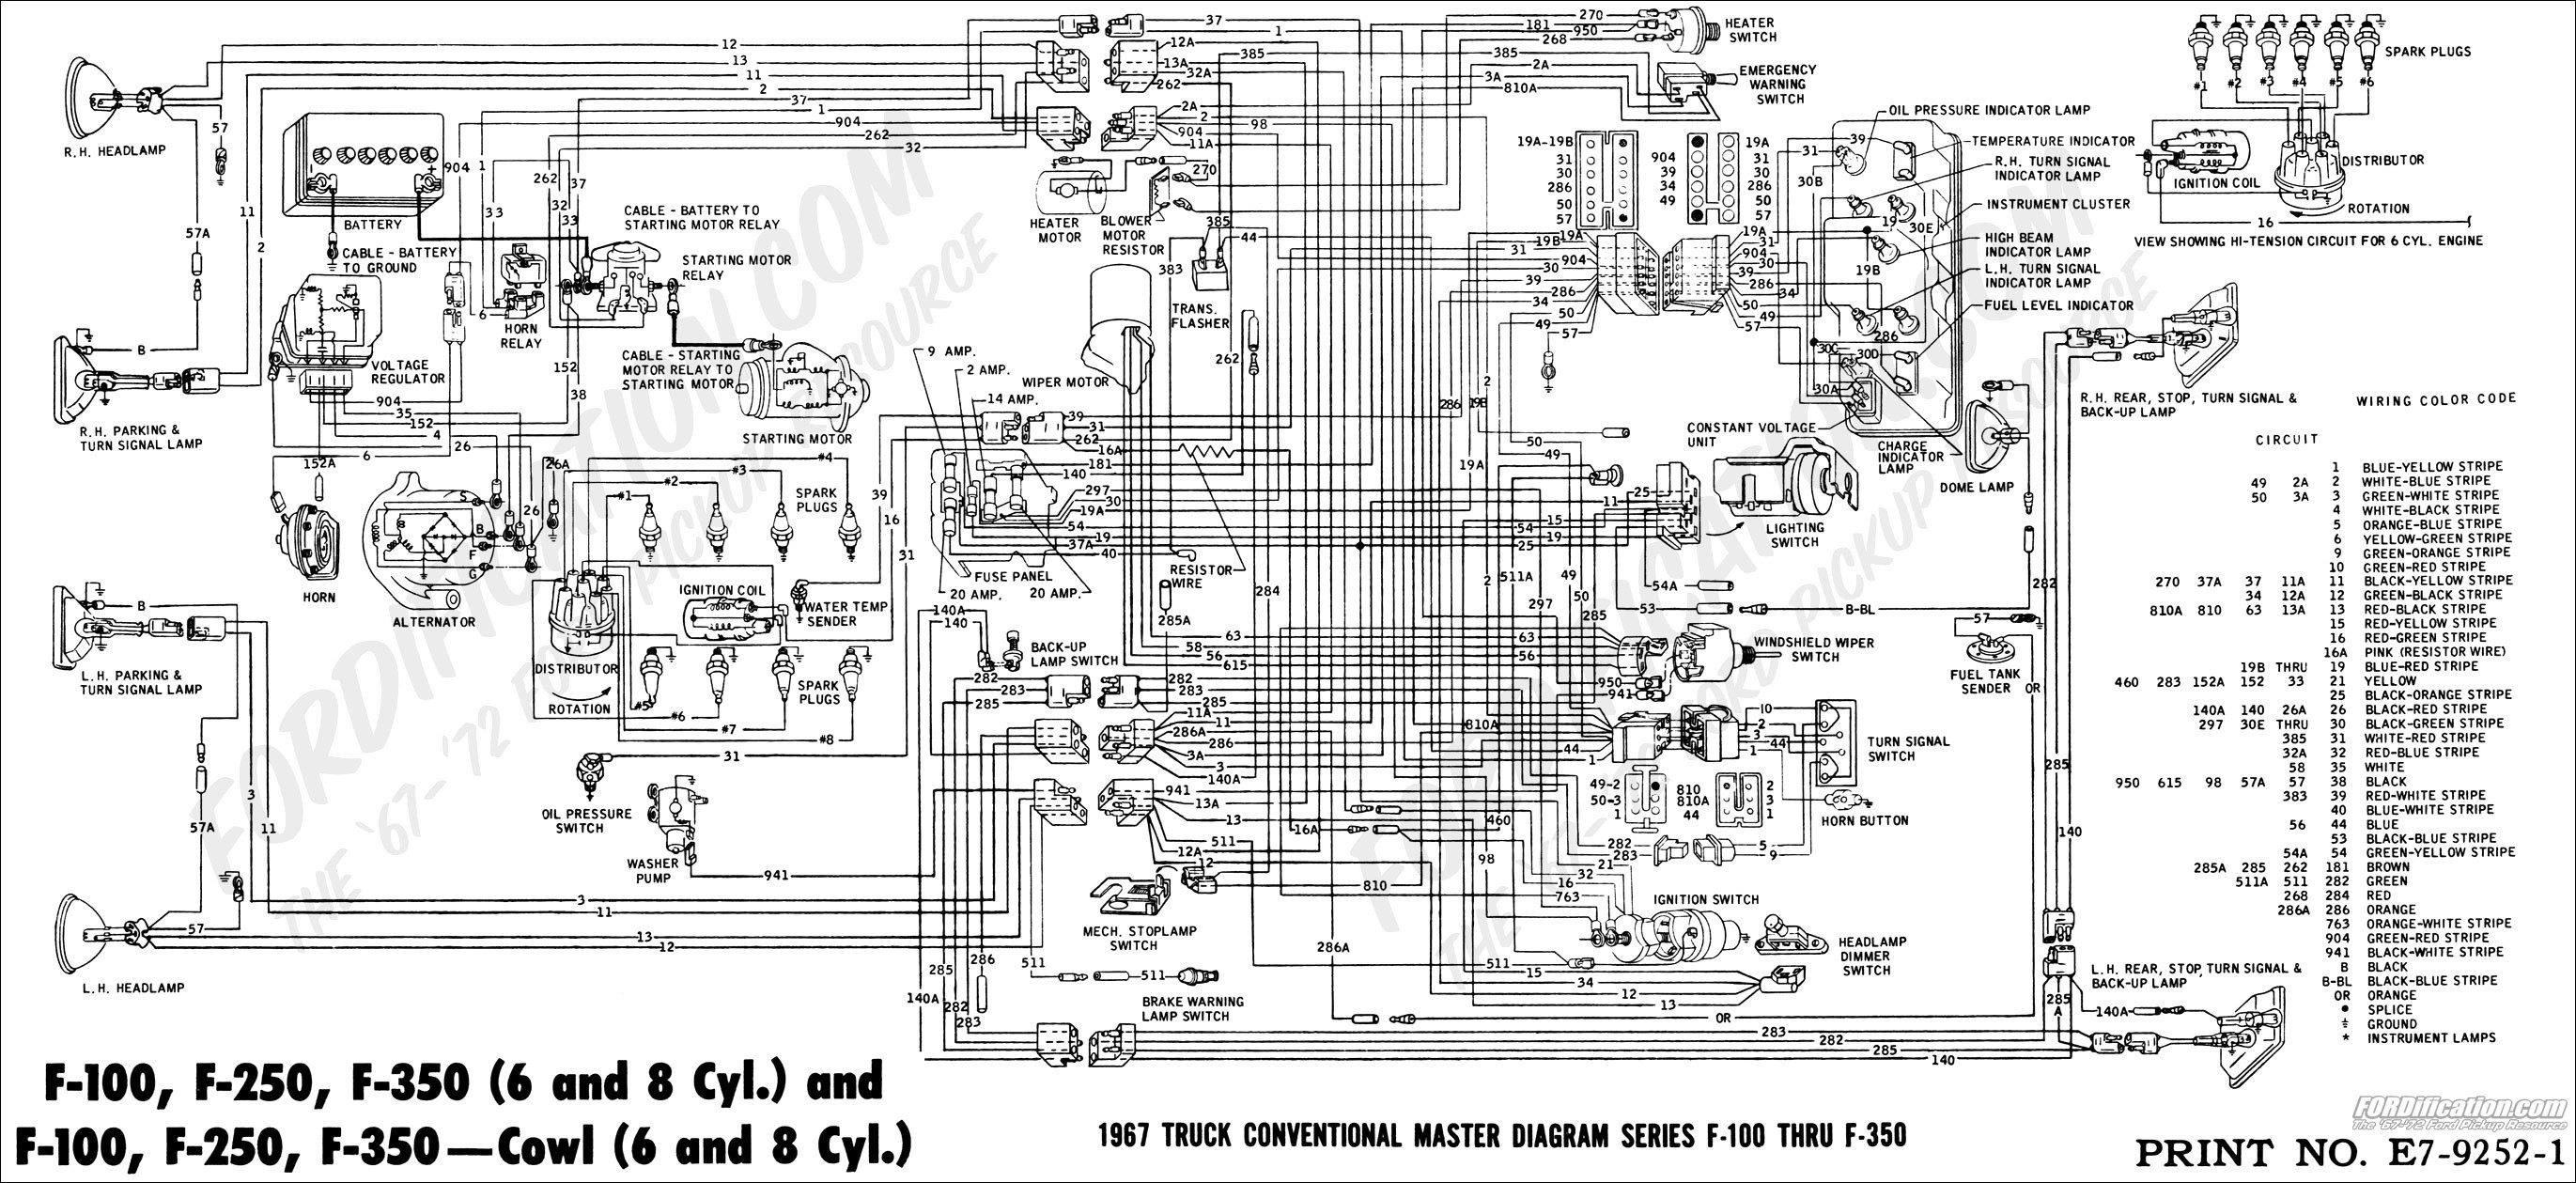 Wiring Diagram Ford F150 1999 Truck Data